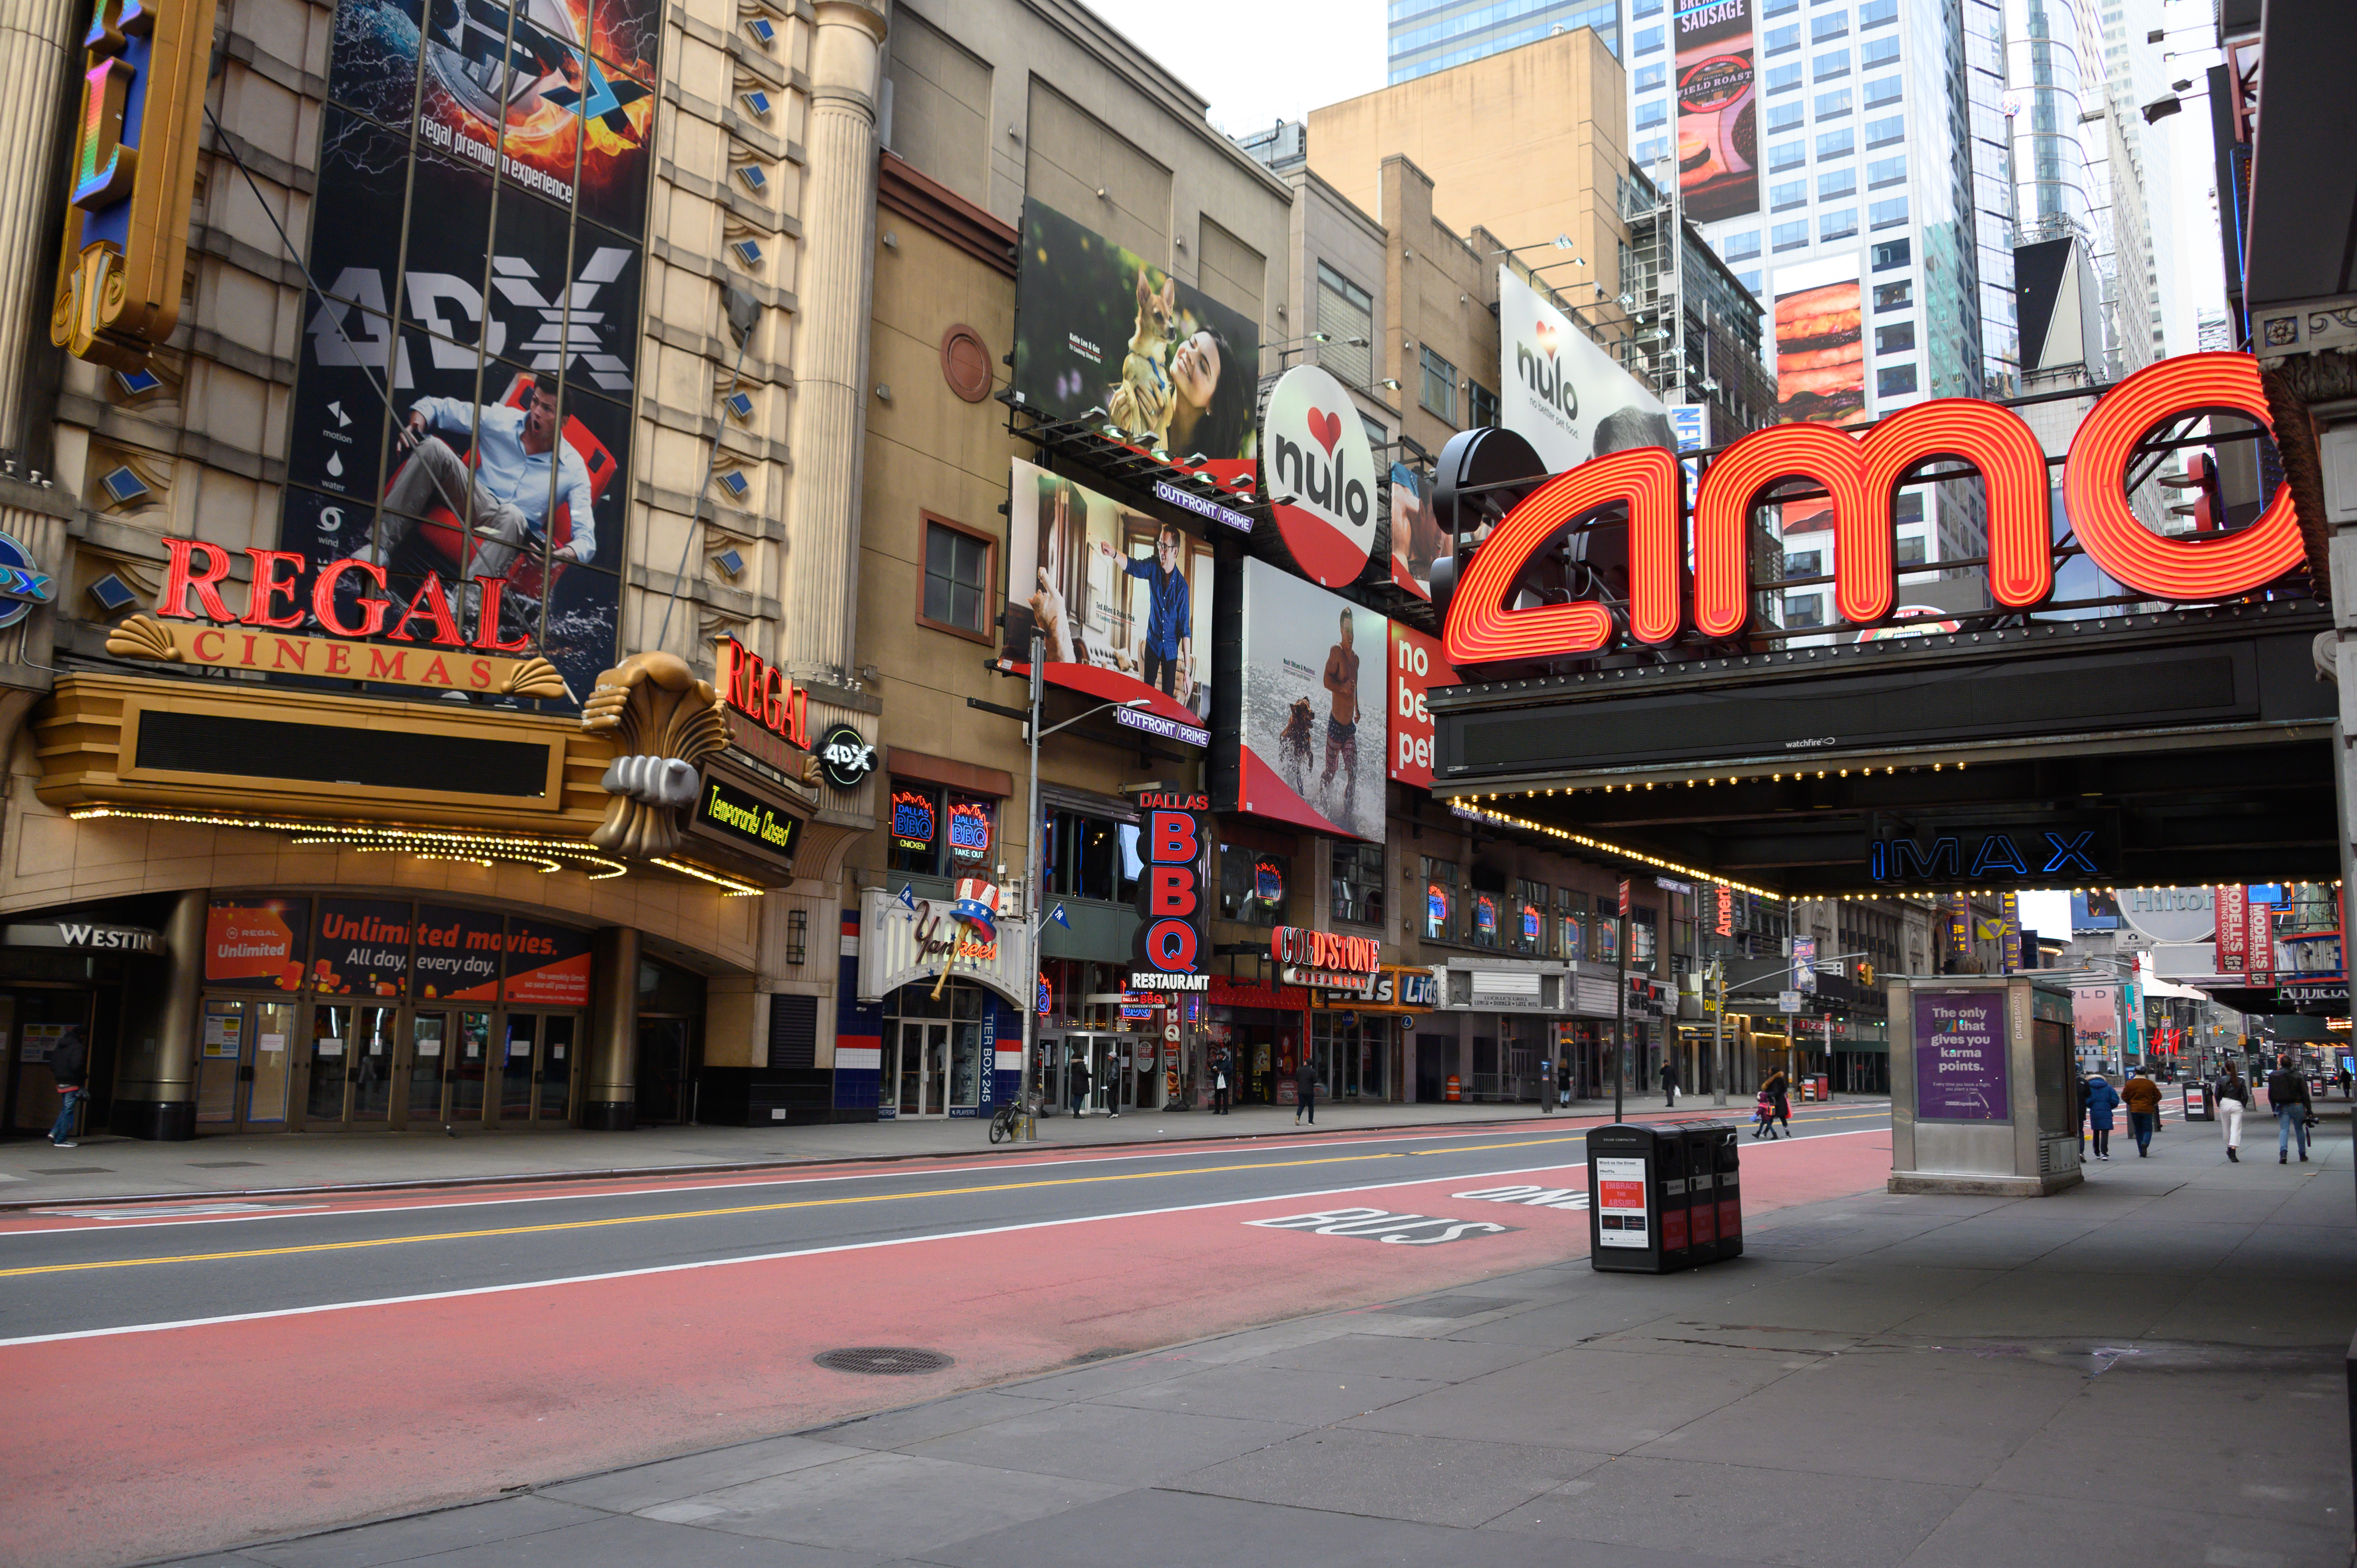 New York City Tourism And Entertainment Industry Stifled By Coronavirus Restrictions